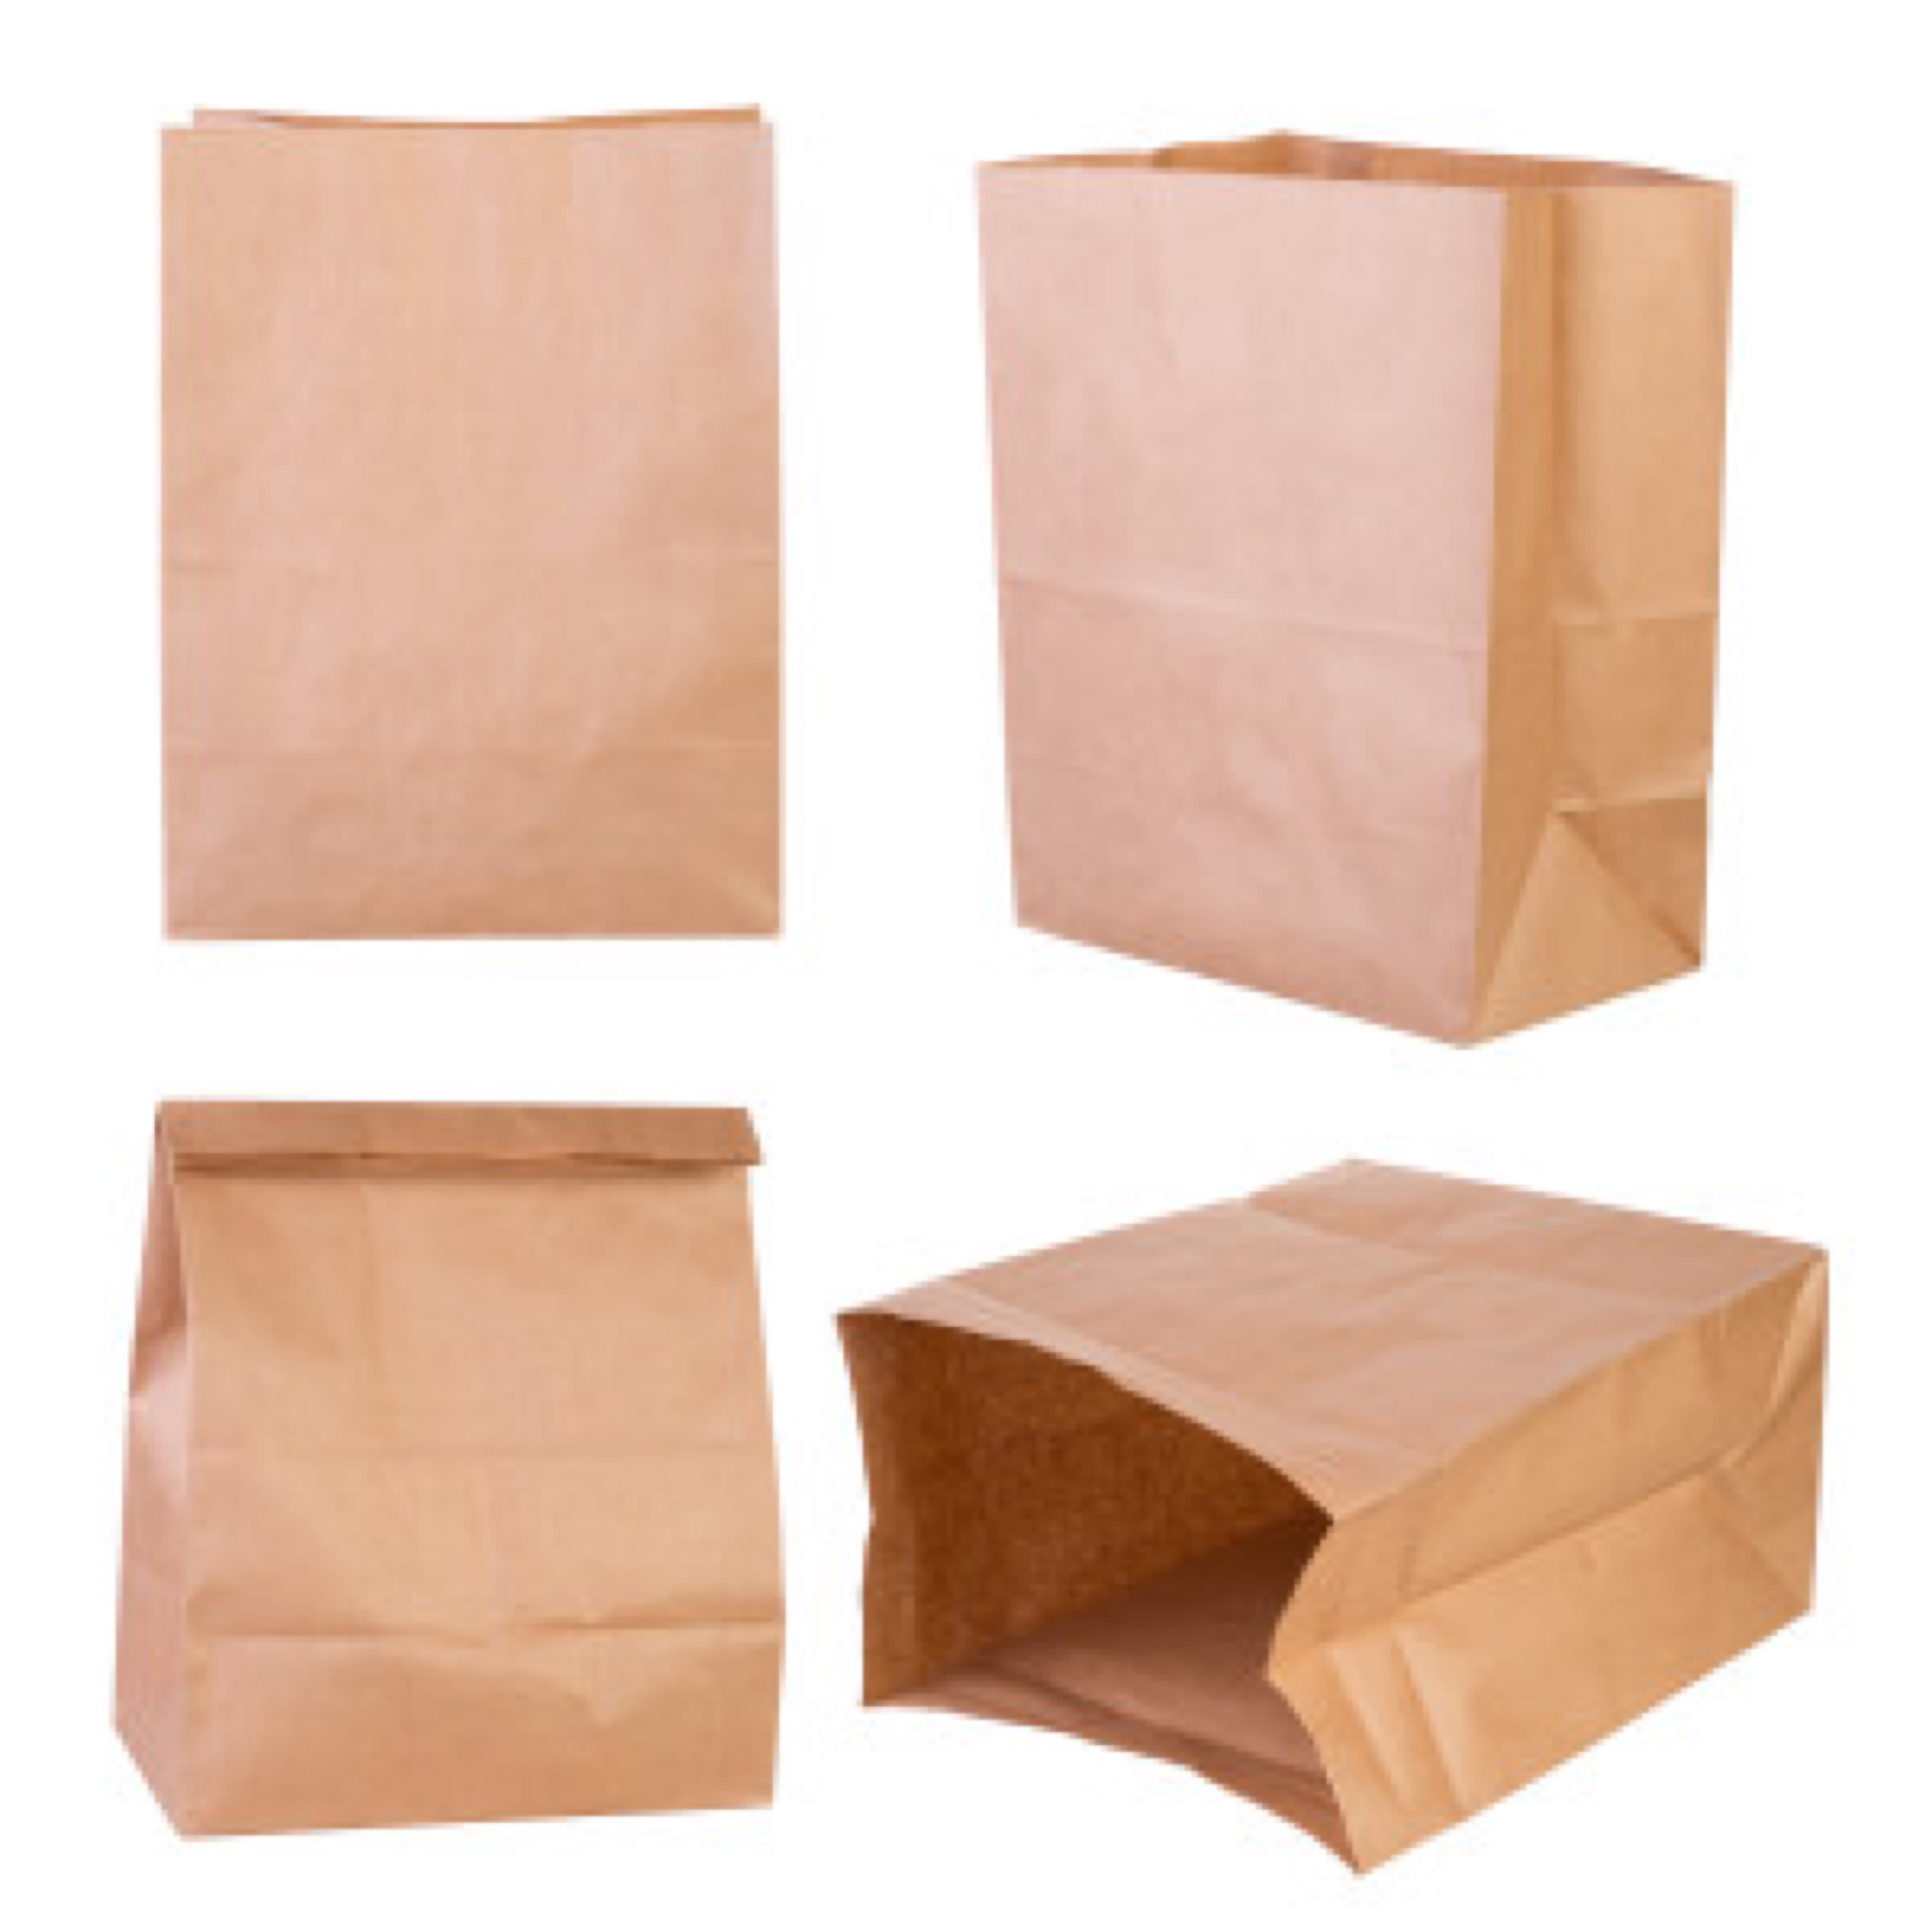 Brown paper bags isolated on white background